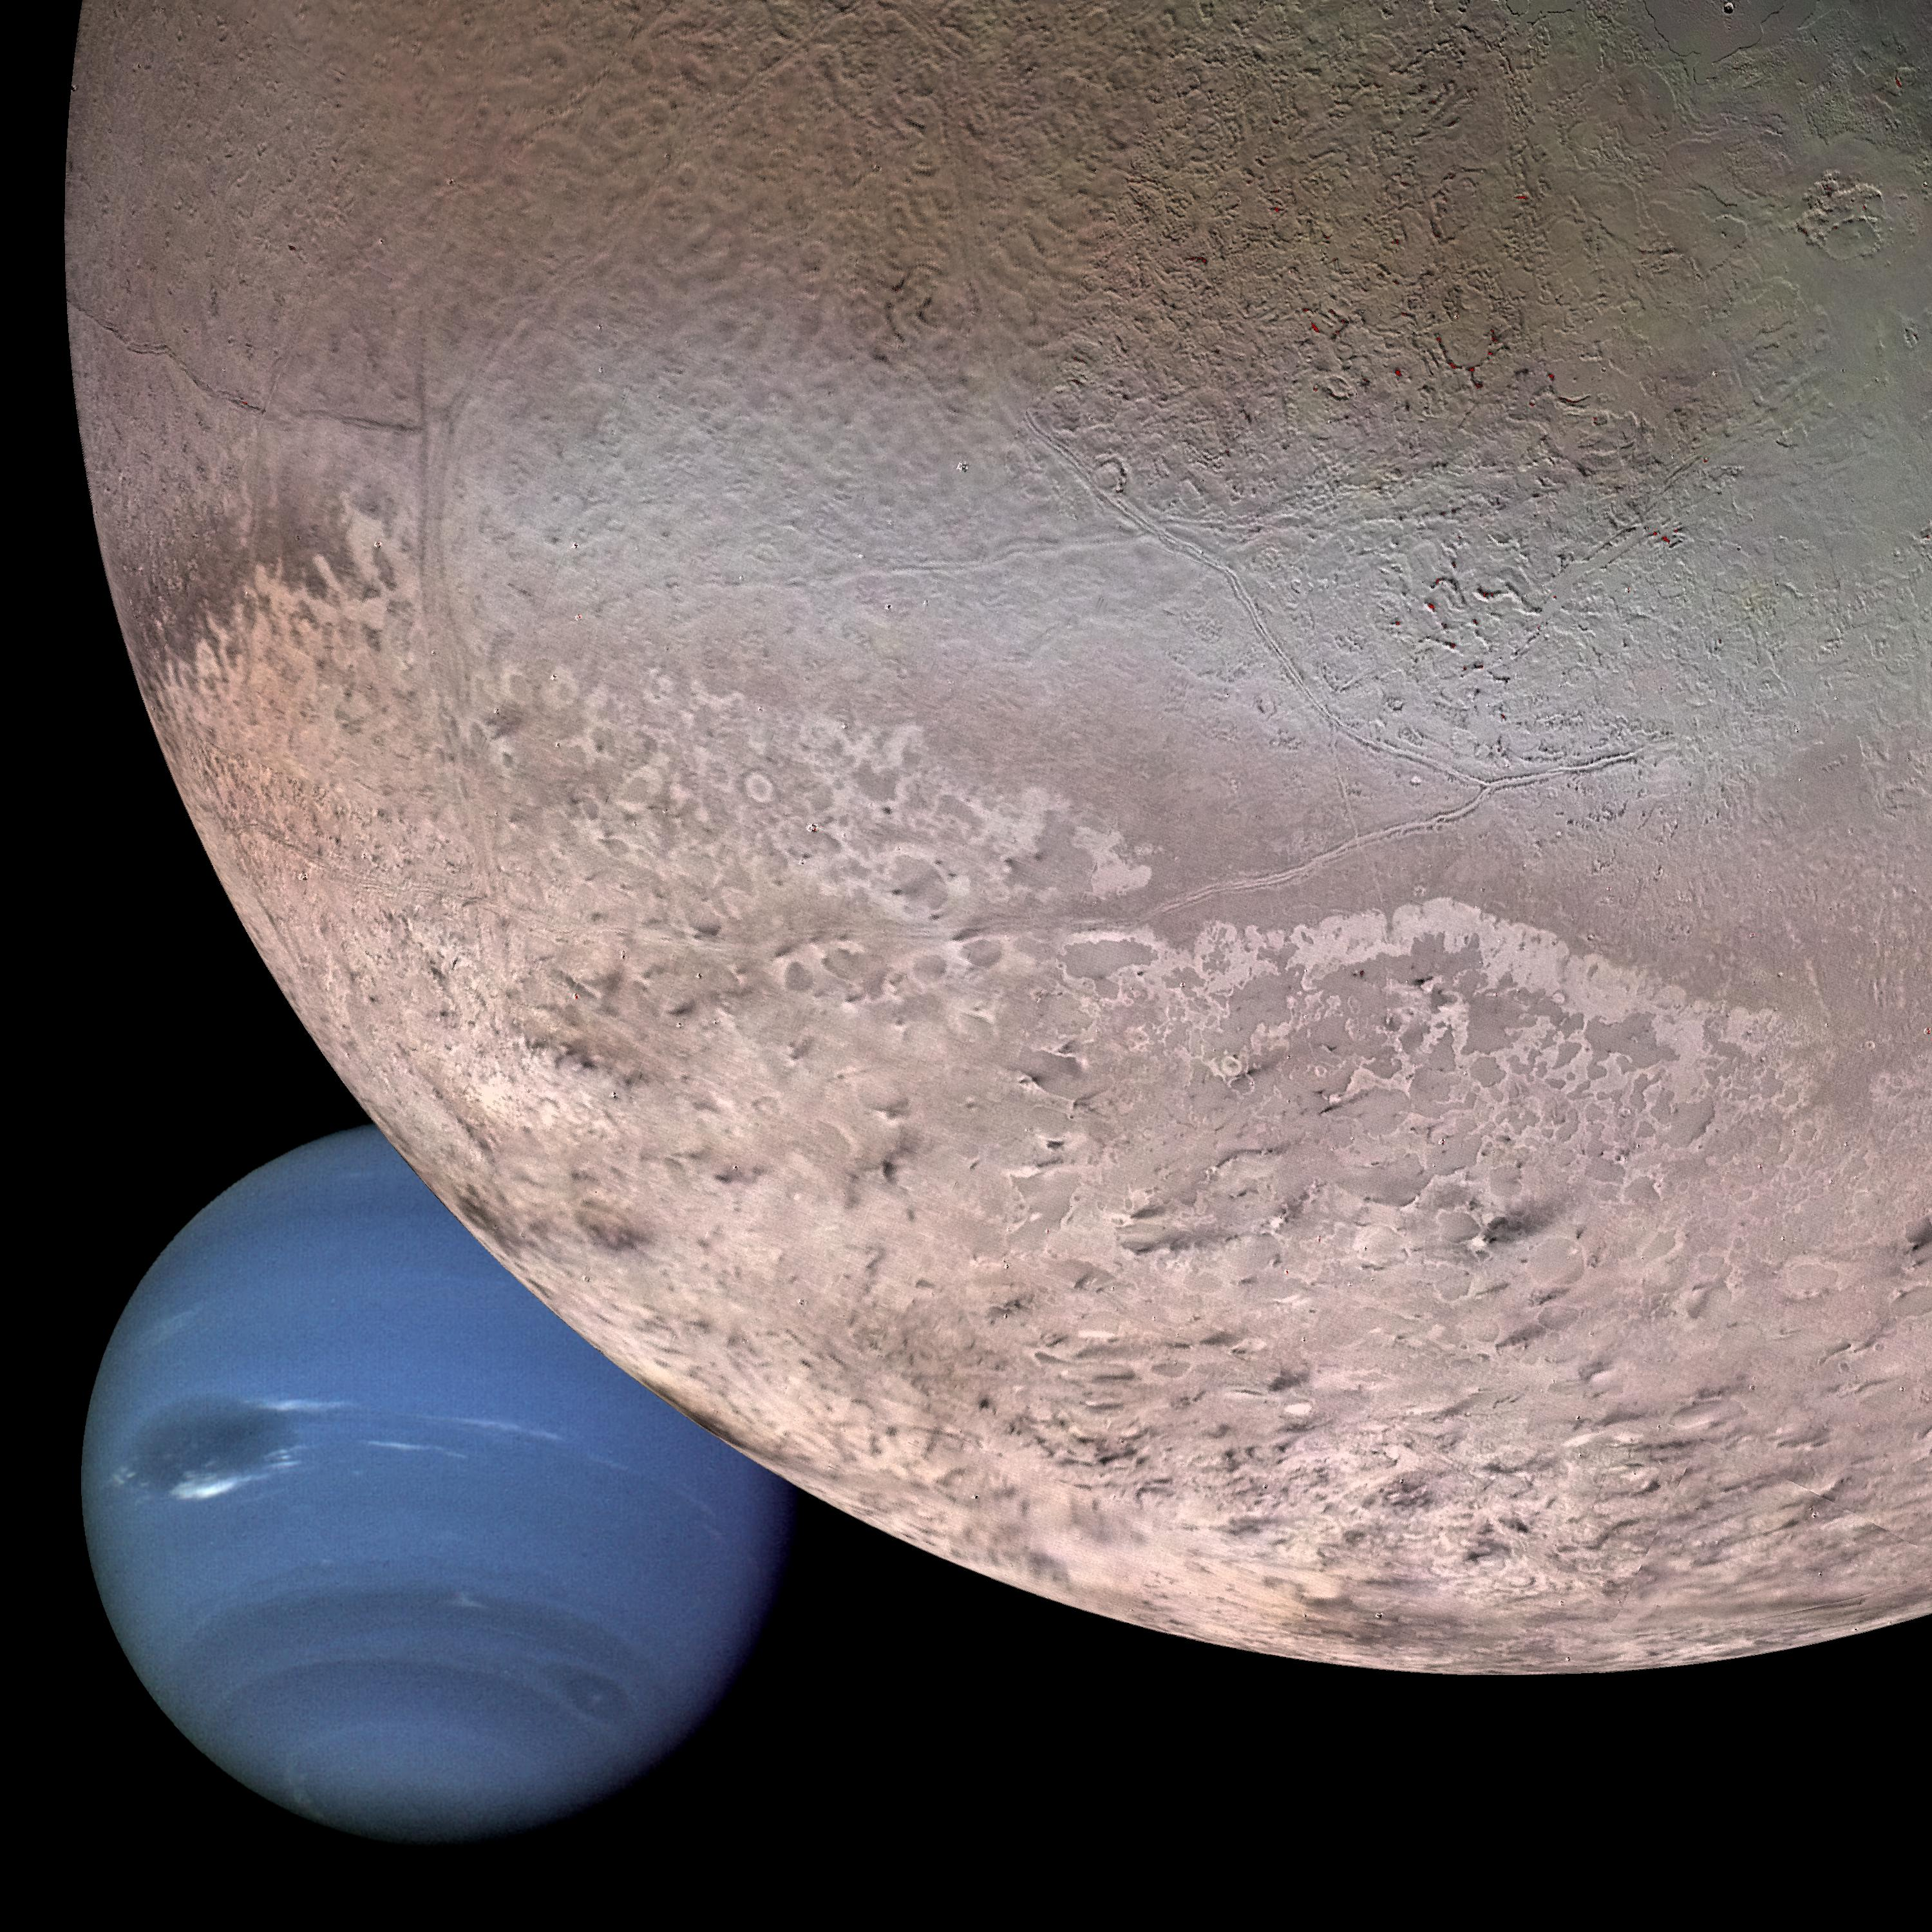 Images of Triton